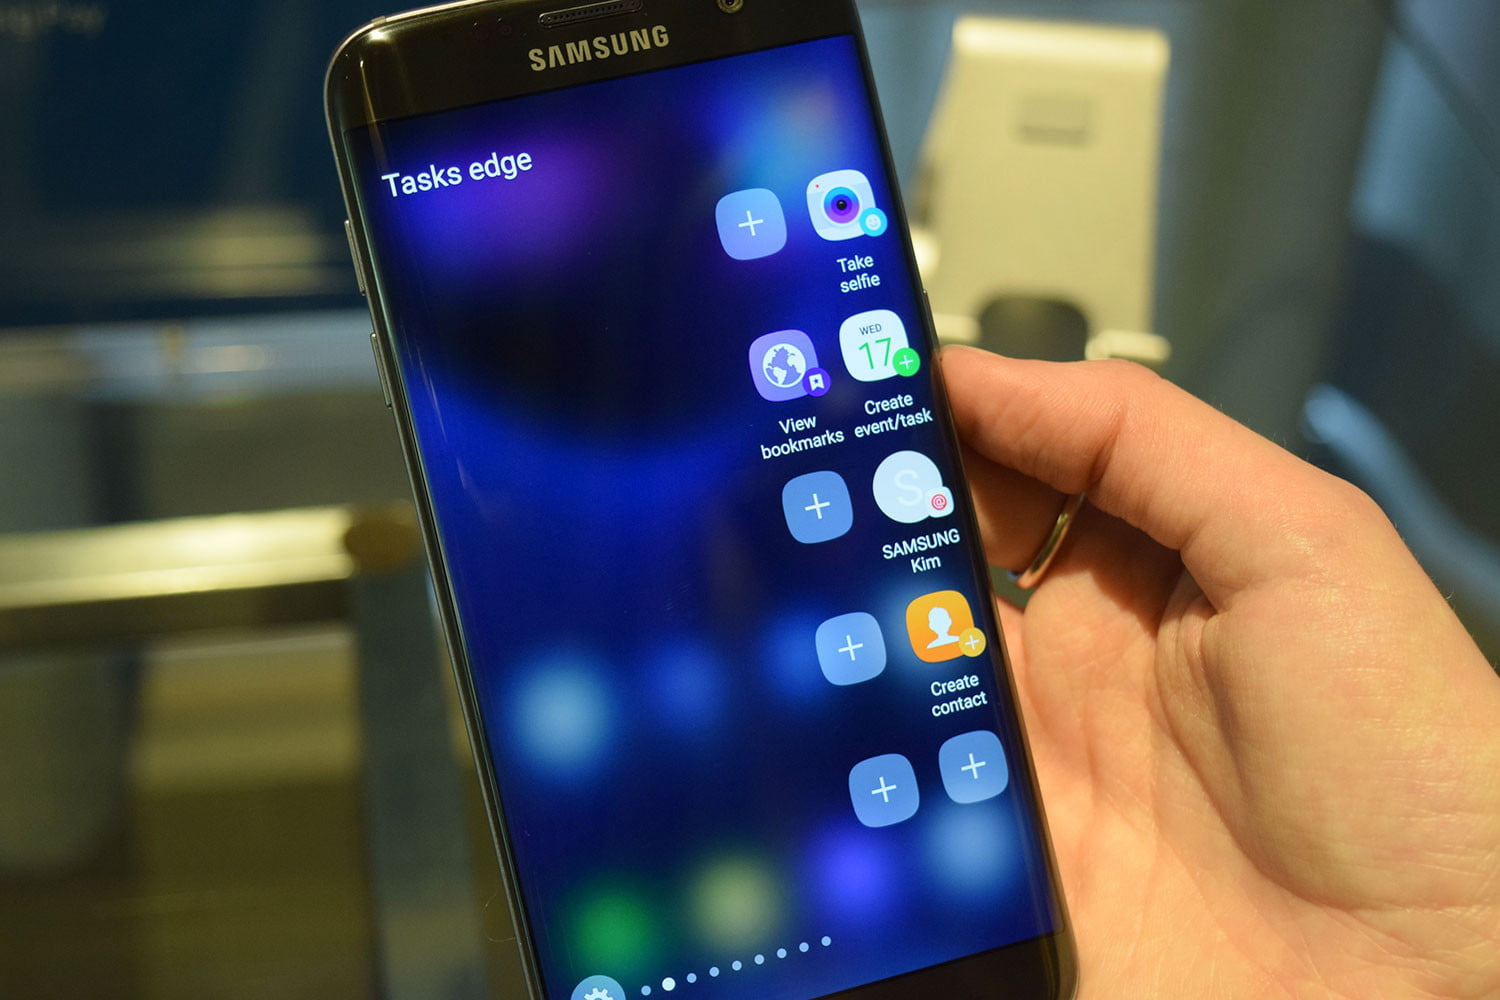 Samsung Galaxy S7 and S7 Edge hands-on impressions